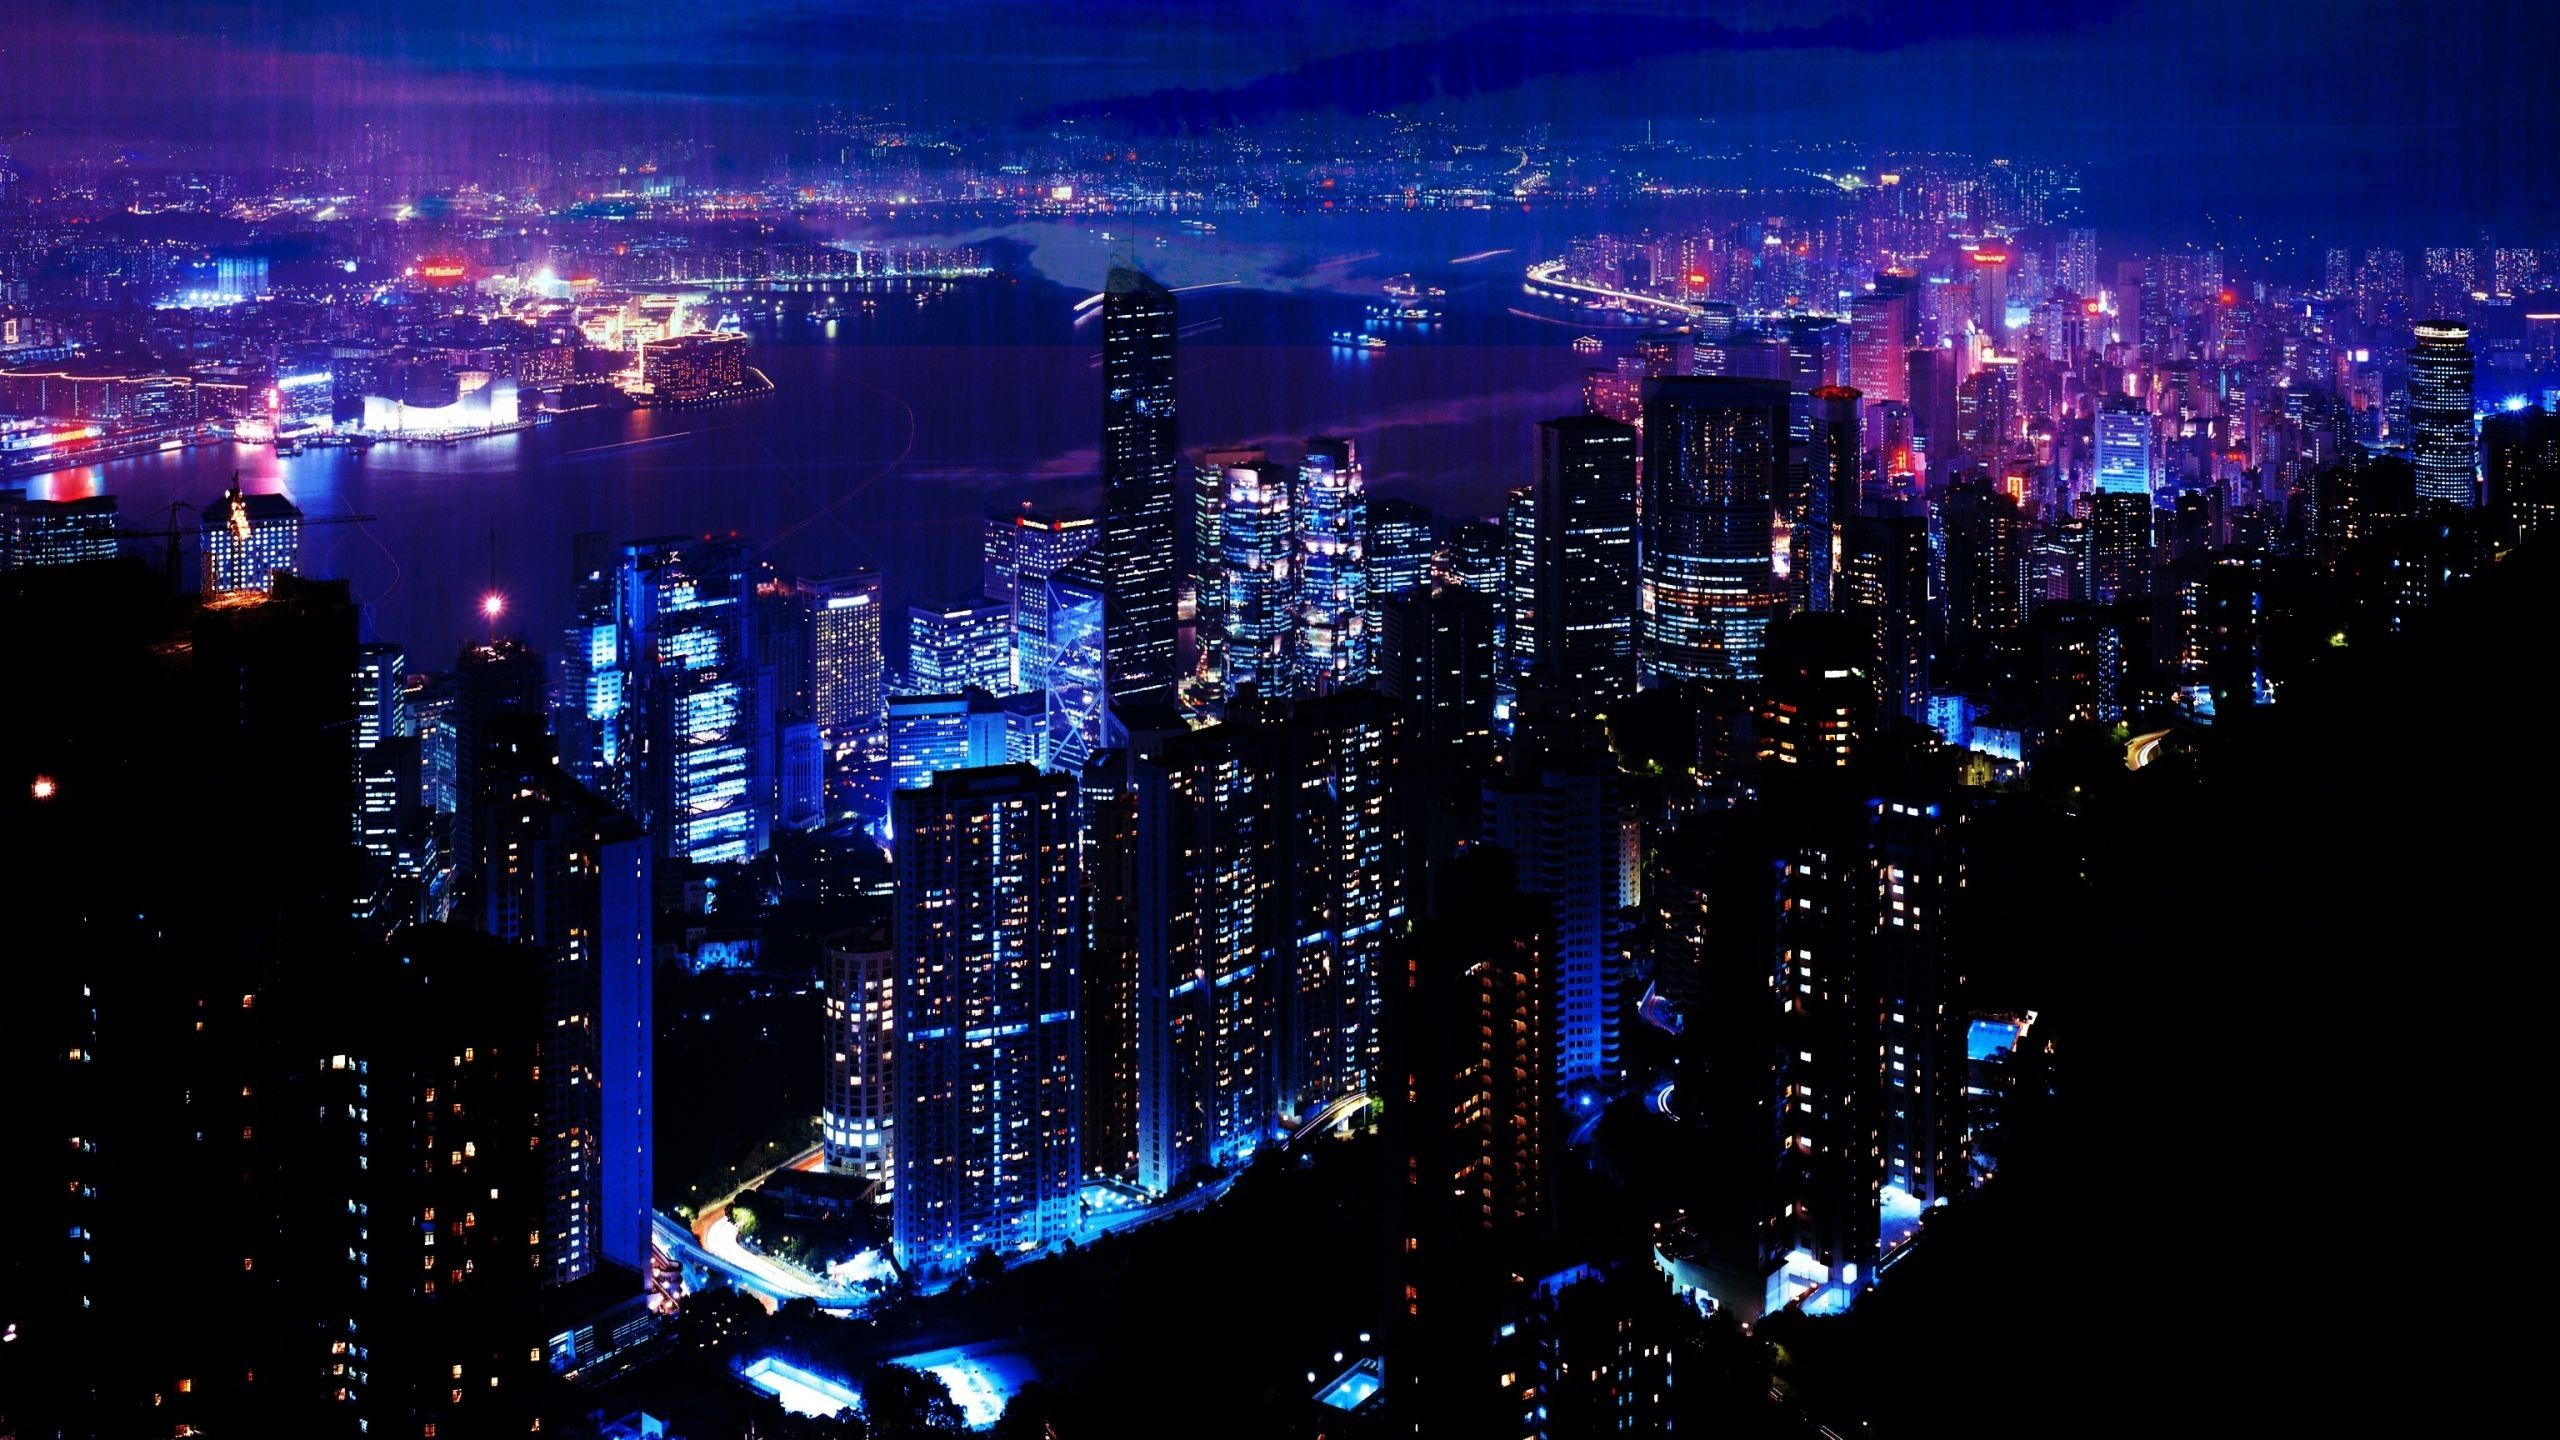 Night City Wallpapers Top Free Night City Backgrounds